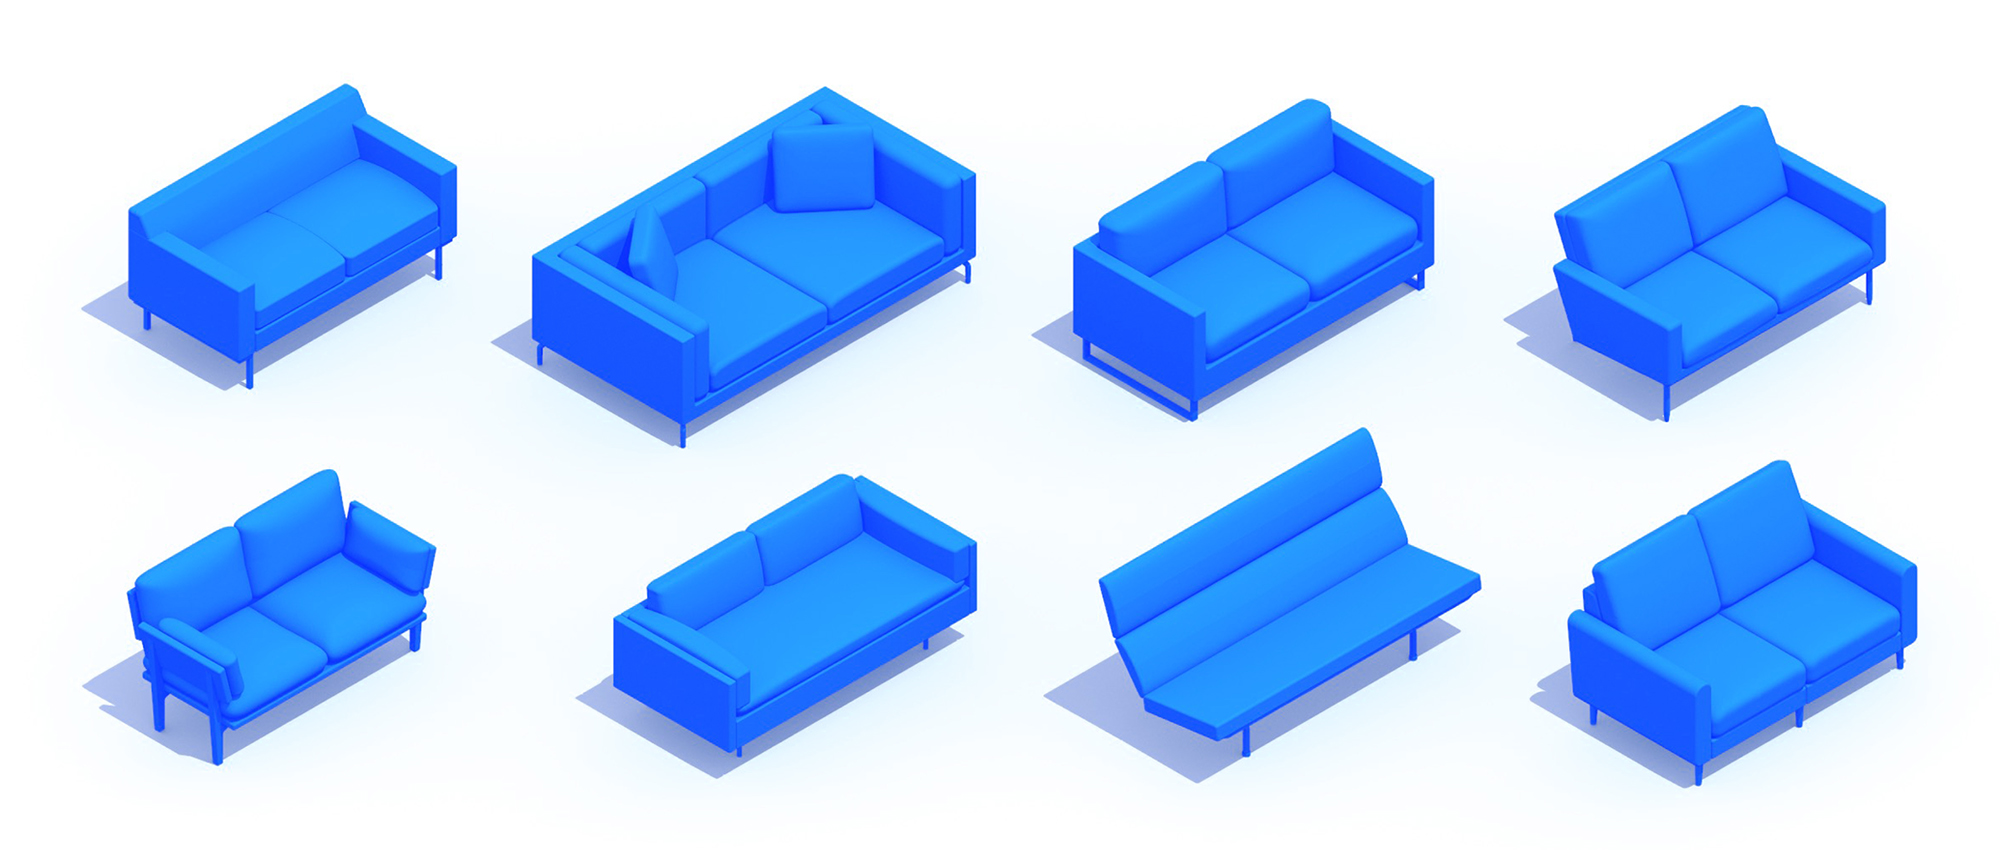 Assorted group of scaled 3D Loveseats representing a range of sizes, styles, functions and designs